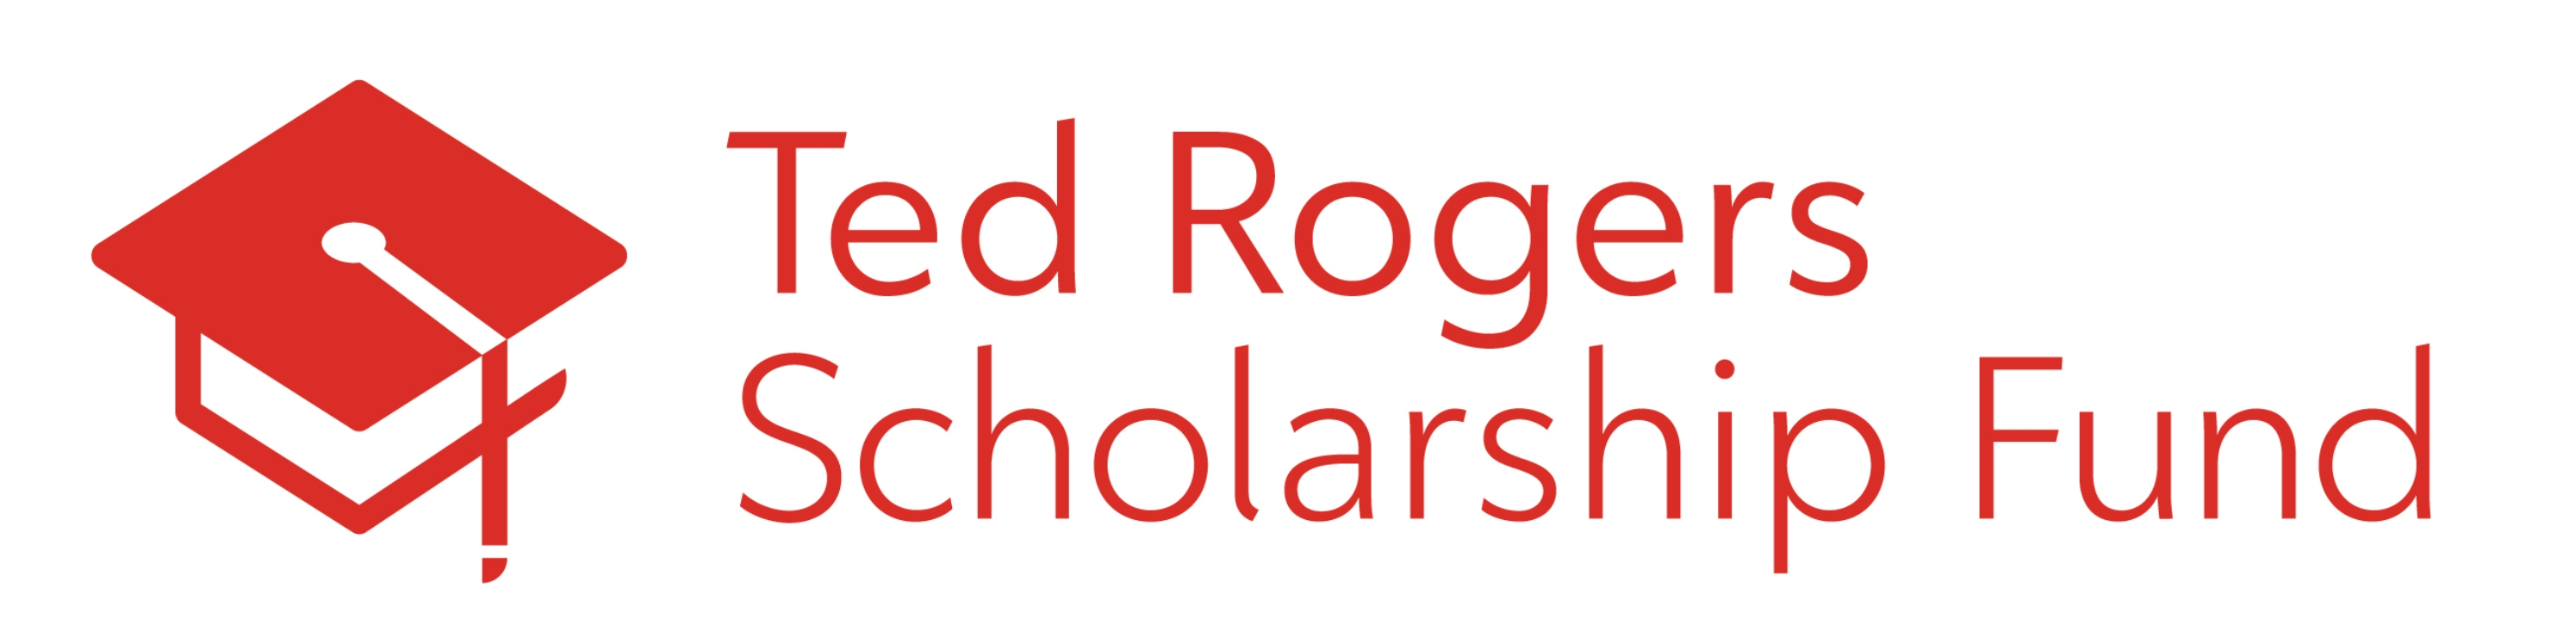 Ted Rogers Scholarship Fund